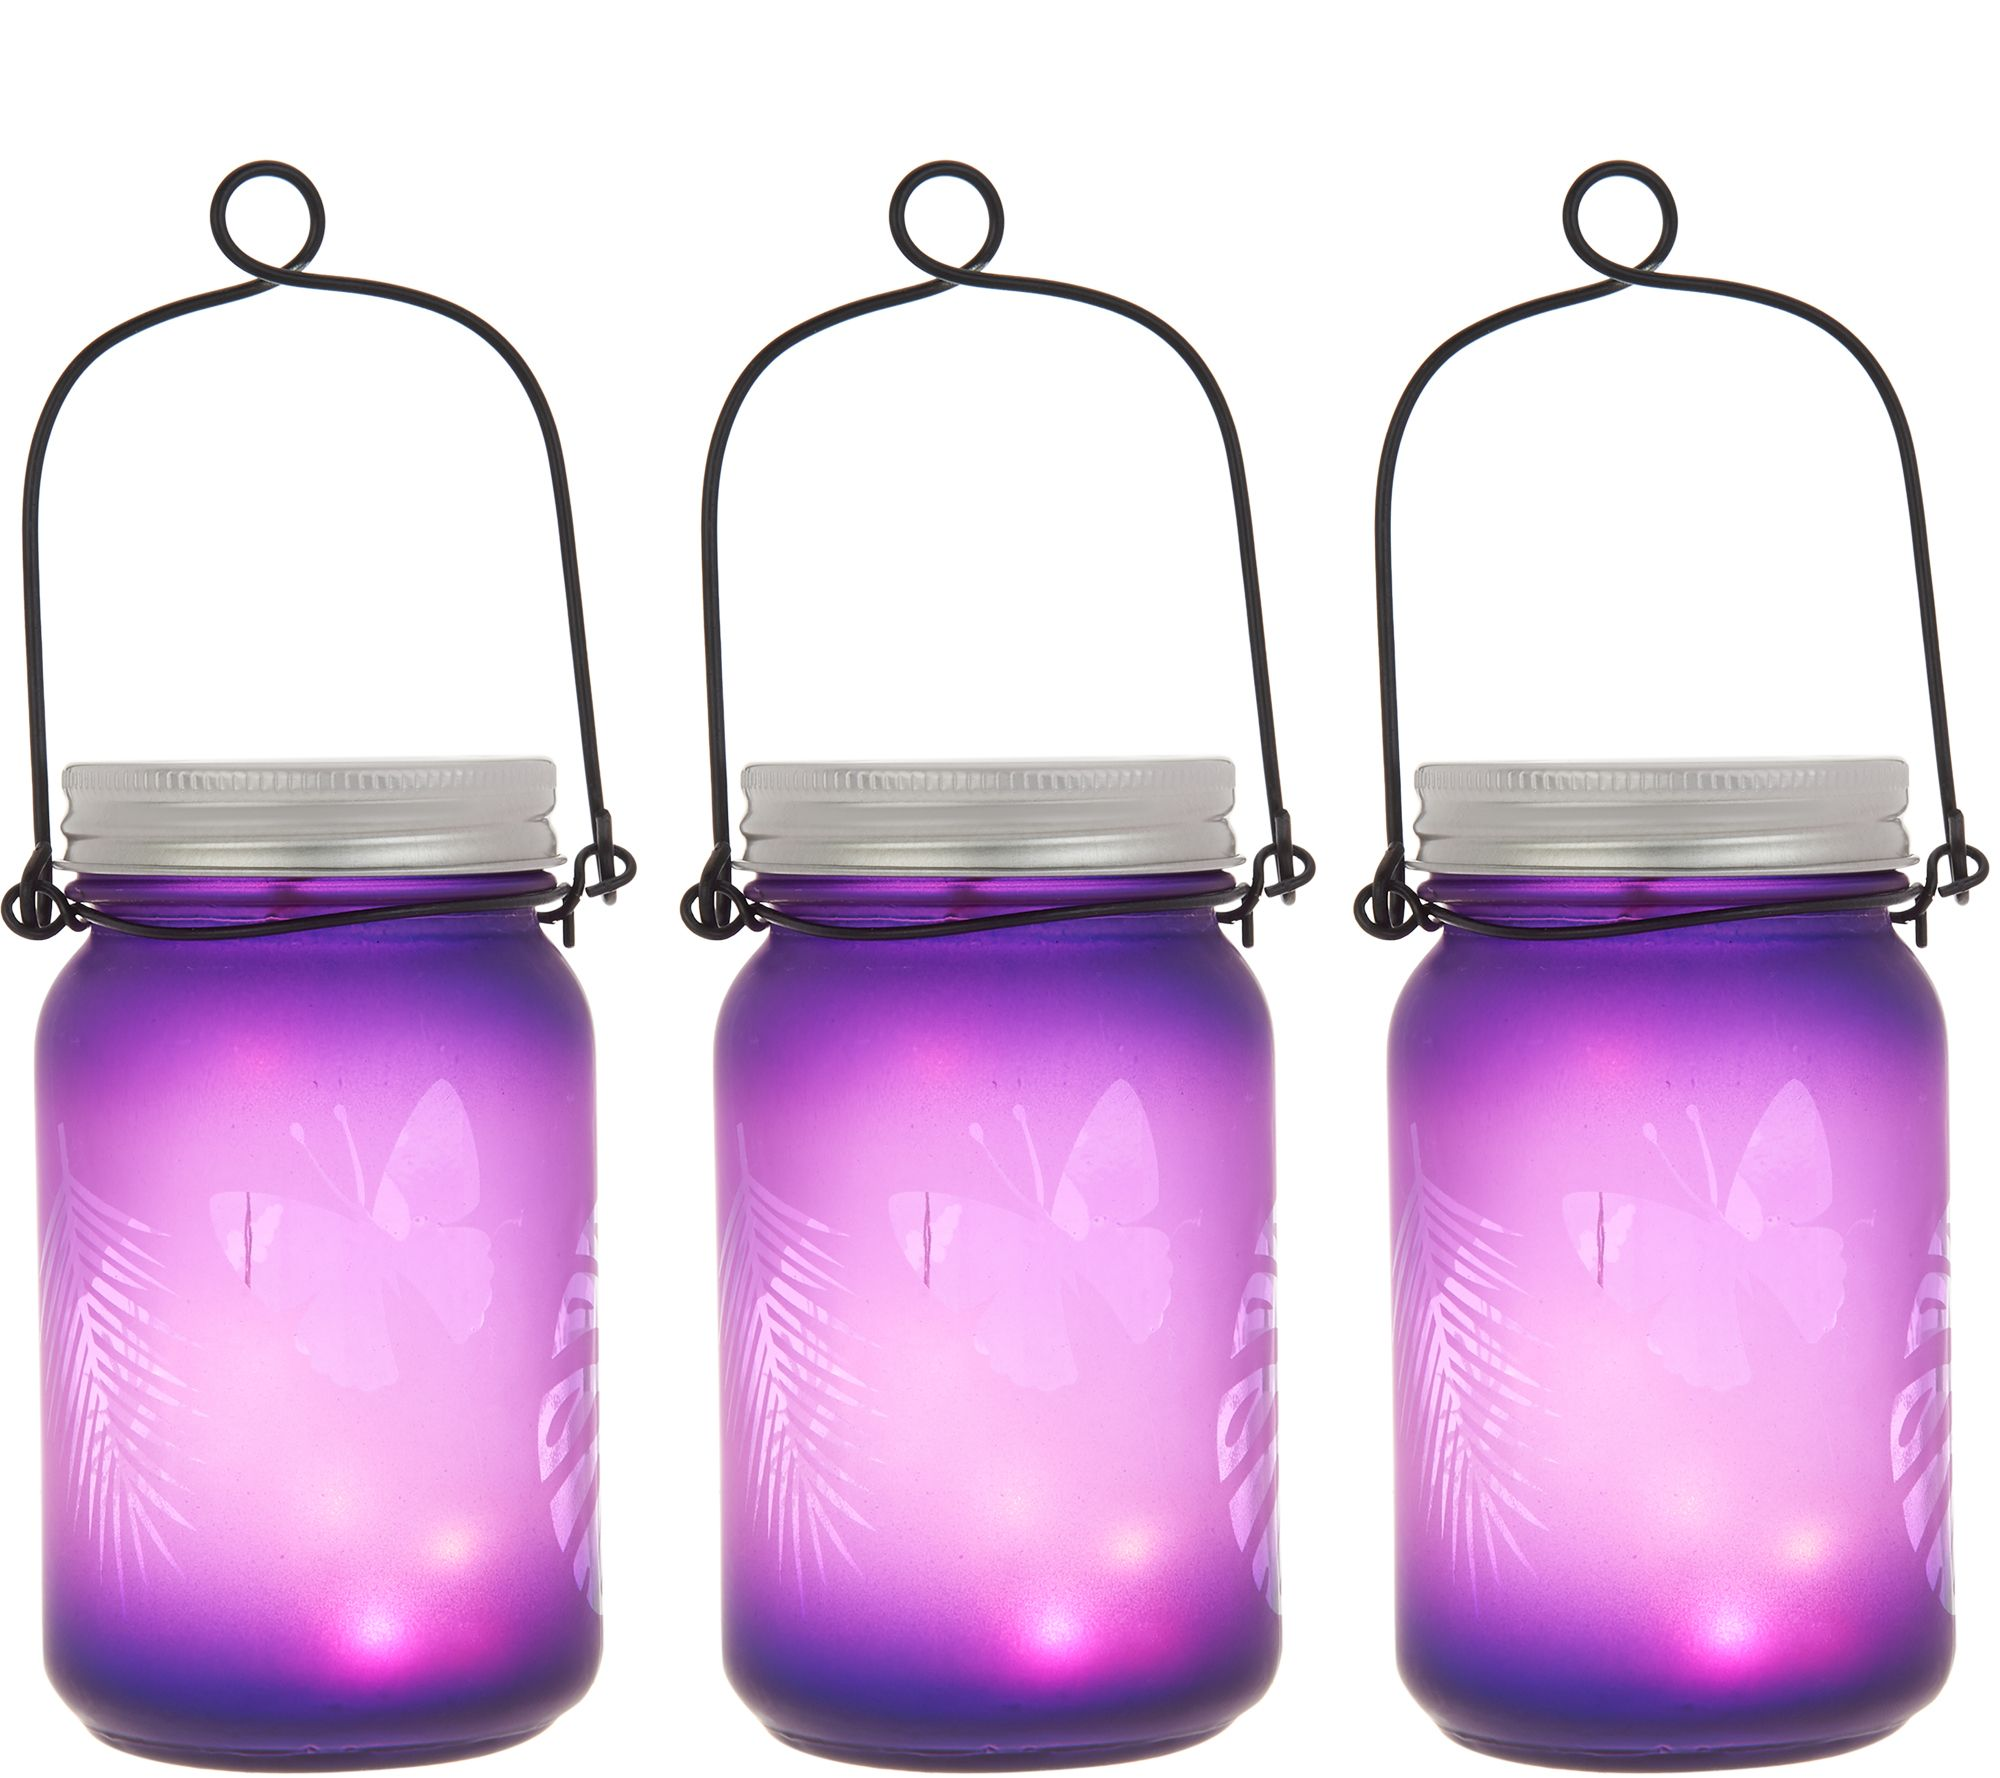 Qvc Masson Set Of 3 Illuminated Indoor Outdoor Mason Jars By Valerie